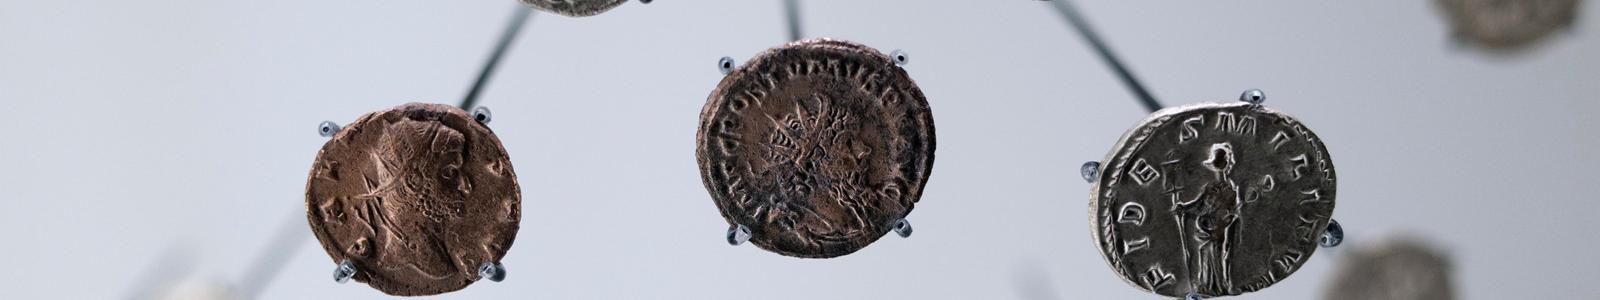 Half a coin, halfpenny, part of a hoard found at White Lane, Greywell, Mapledurwell and Up Nately, Hampshire in 1989, issued by Henry III, minted at Norwich, Norfolk, 1248-1250